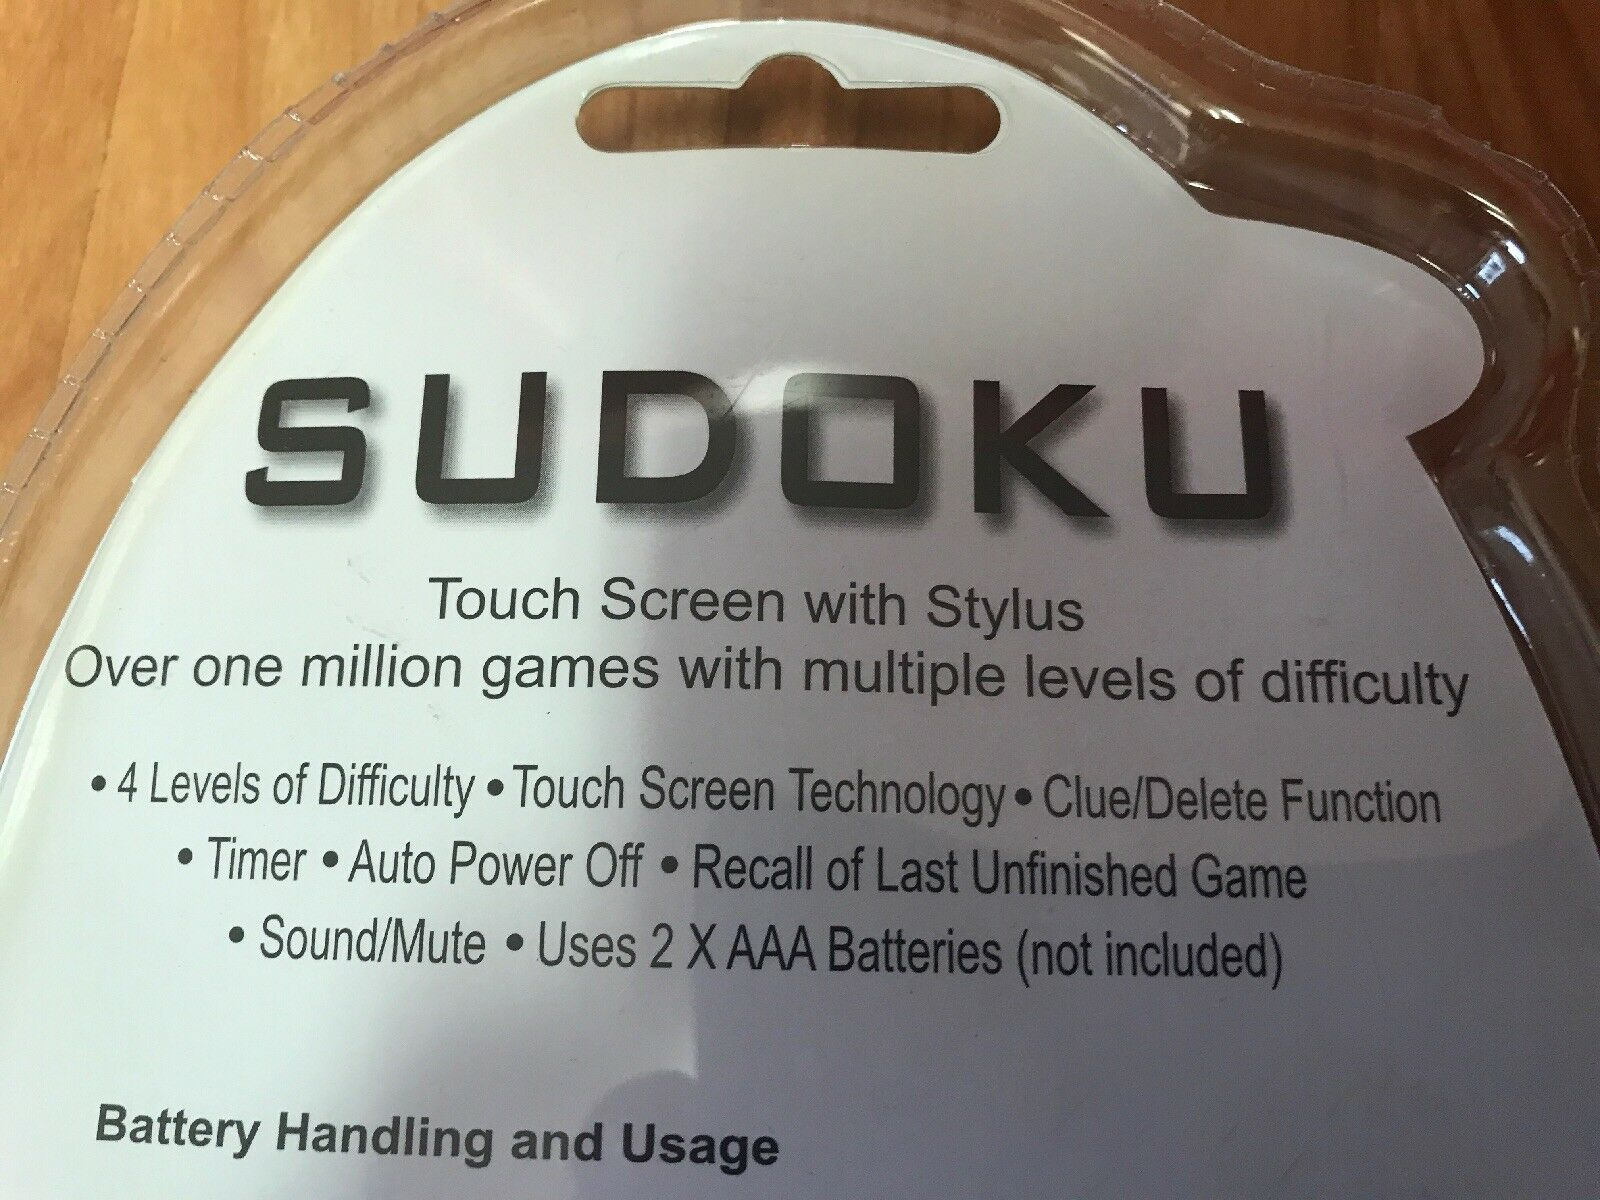 SUDOKU Handheld Touch Screen Stylus Over 1 1 1 Million Games d91110